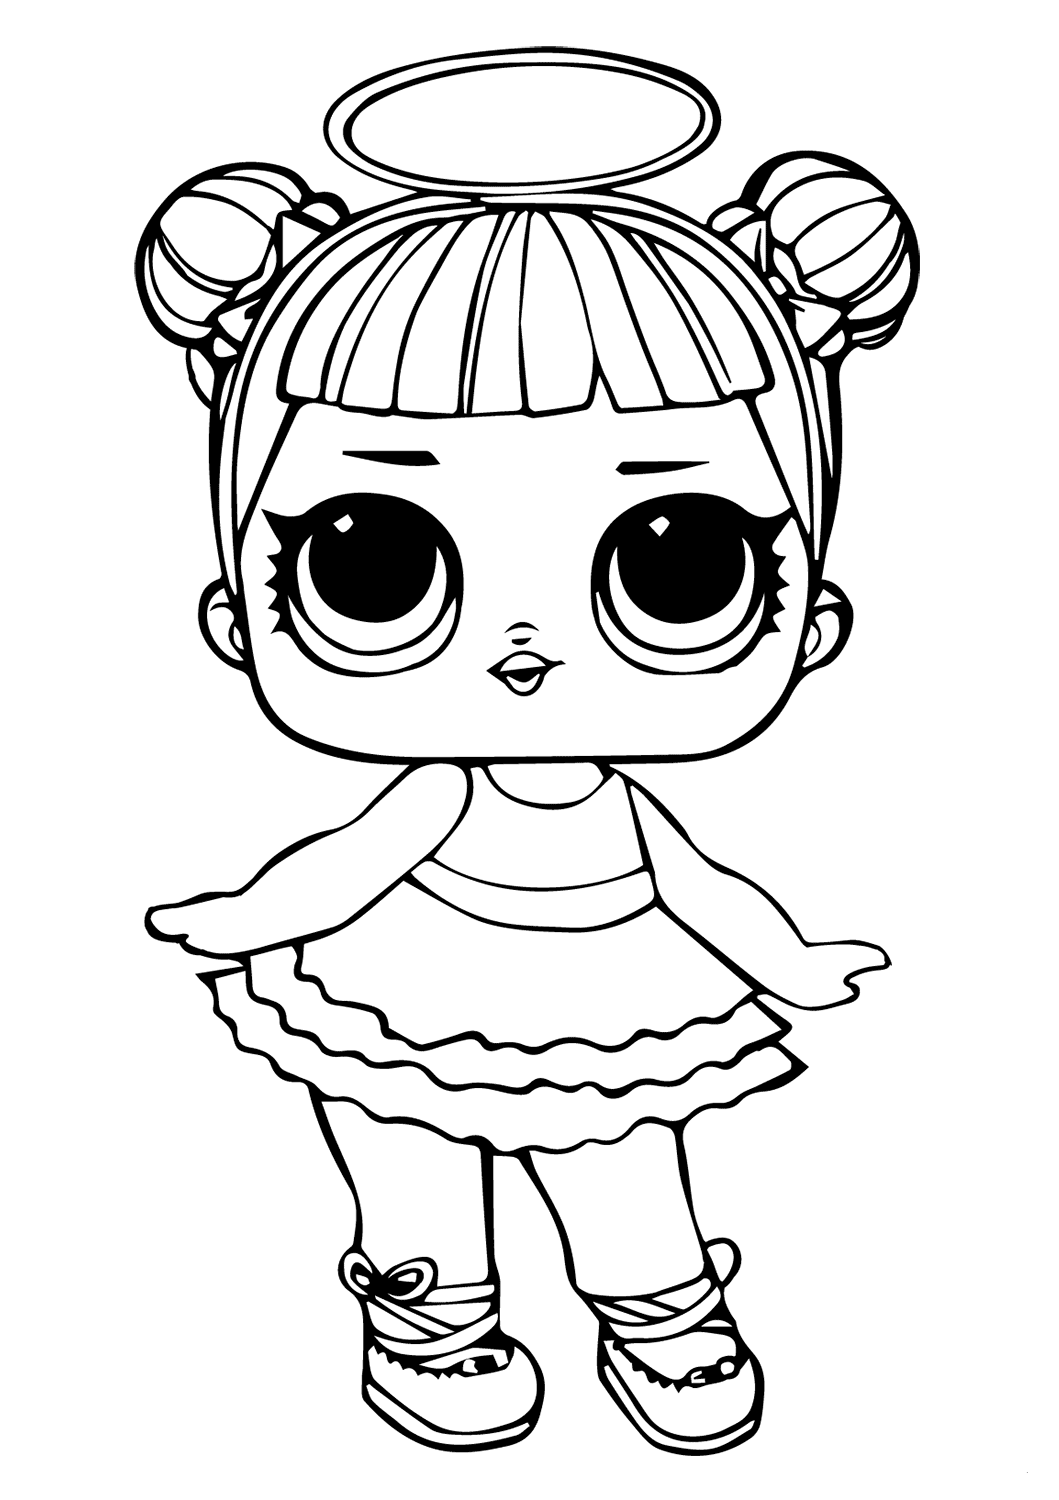 coloring template printable lol colouring pages lol surprise doll coloring pages getcoloringpagescom colouring printable coloring pages lol template